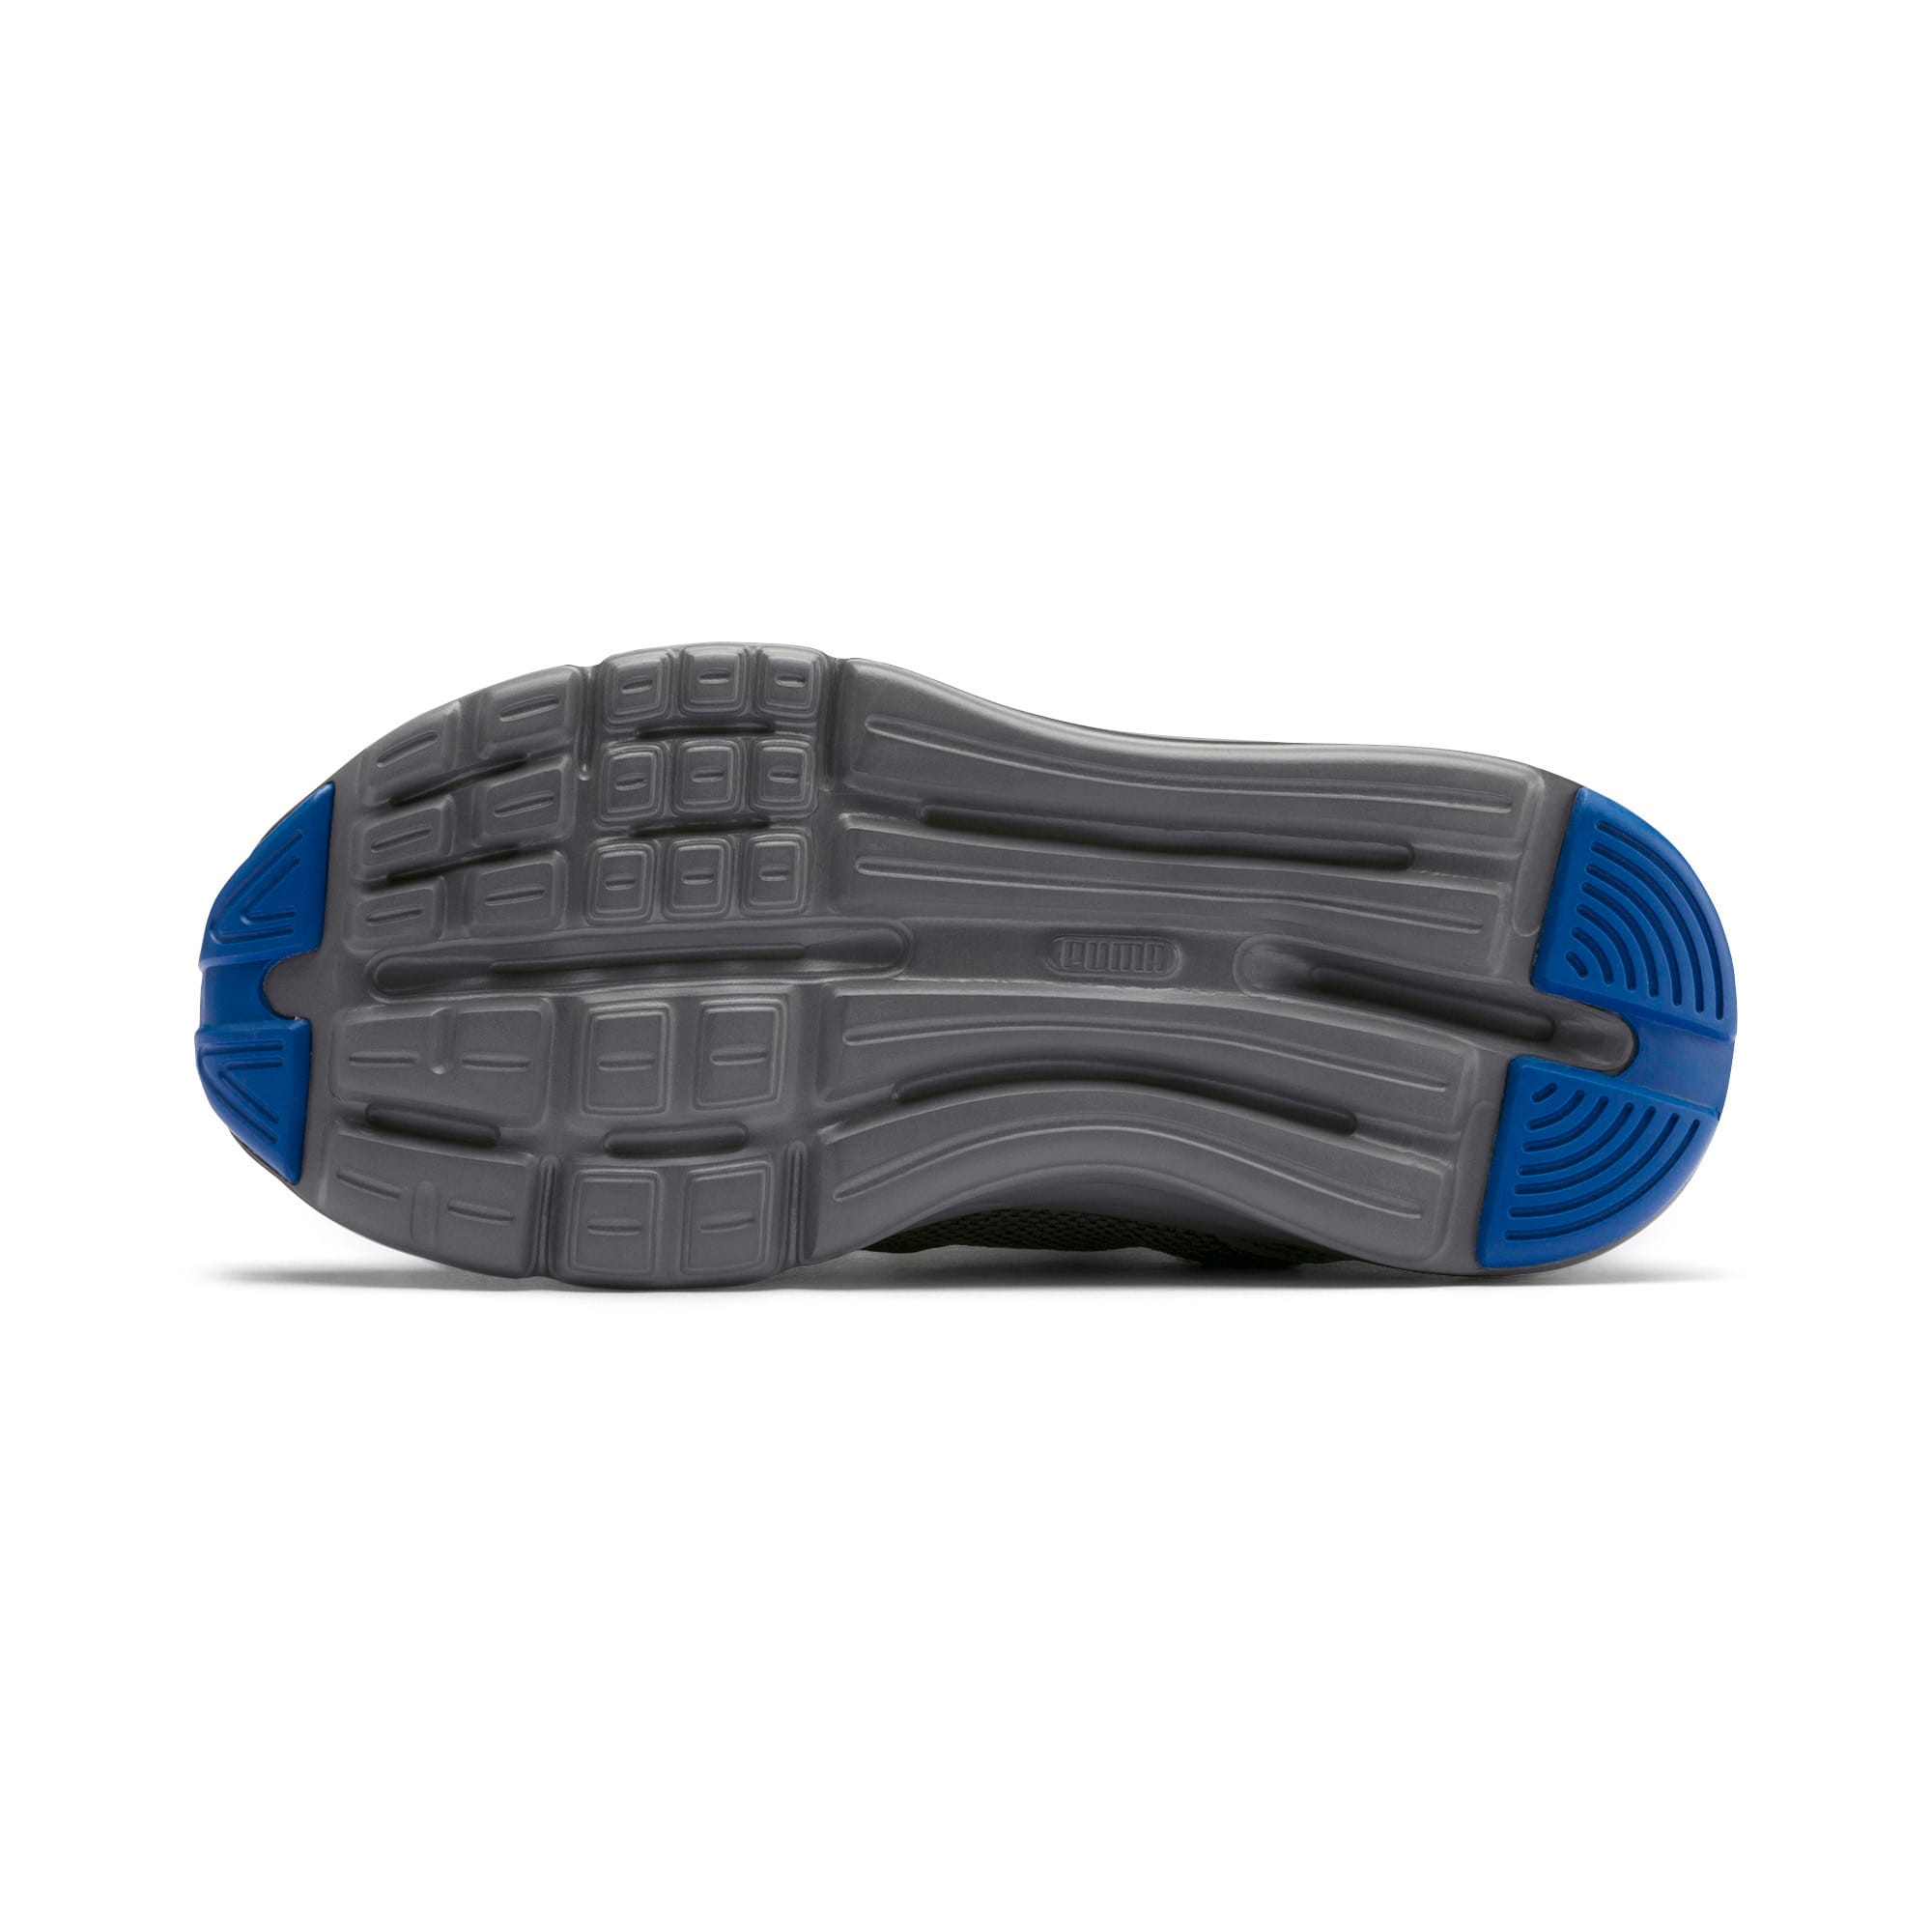 Thumbnail 4 of Enzo Beta Kids' Trainers, CASTLEROCK-Galaxy Blue, medium-IND